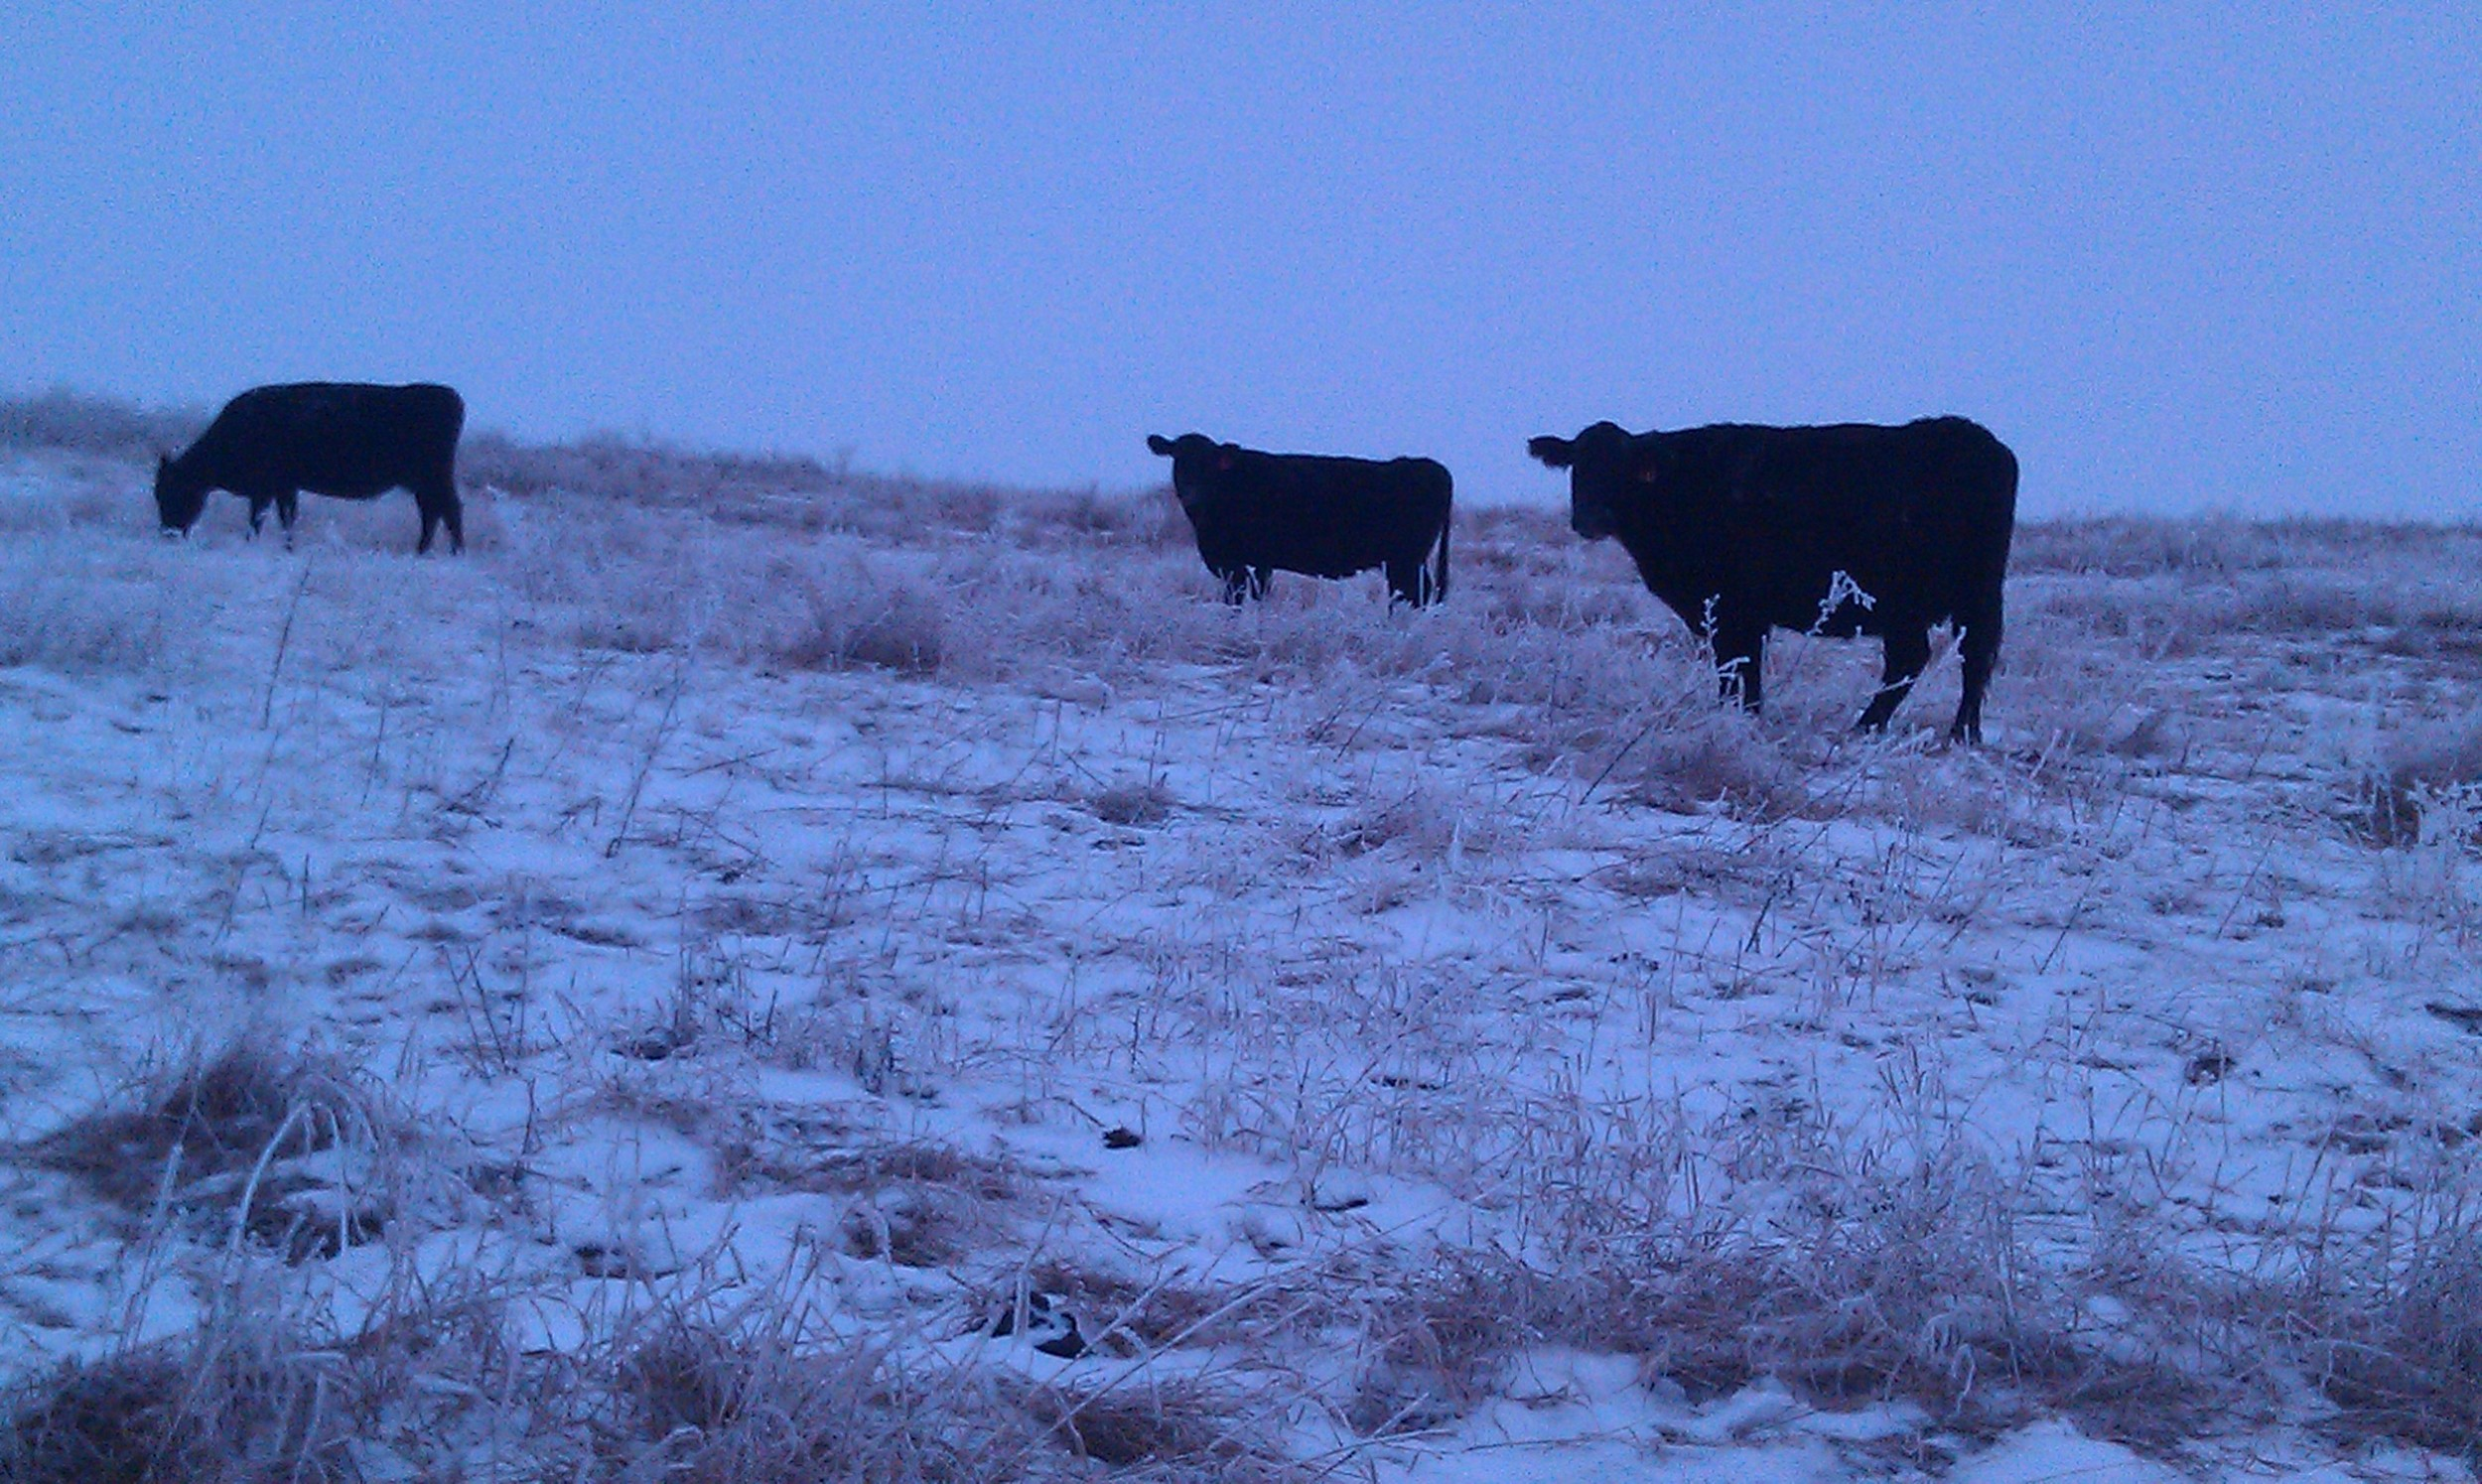 THESE OLD GIRLS KNOW HOW TO WORK FOR A LIVING! GRAZING JANUARY 2012